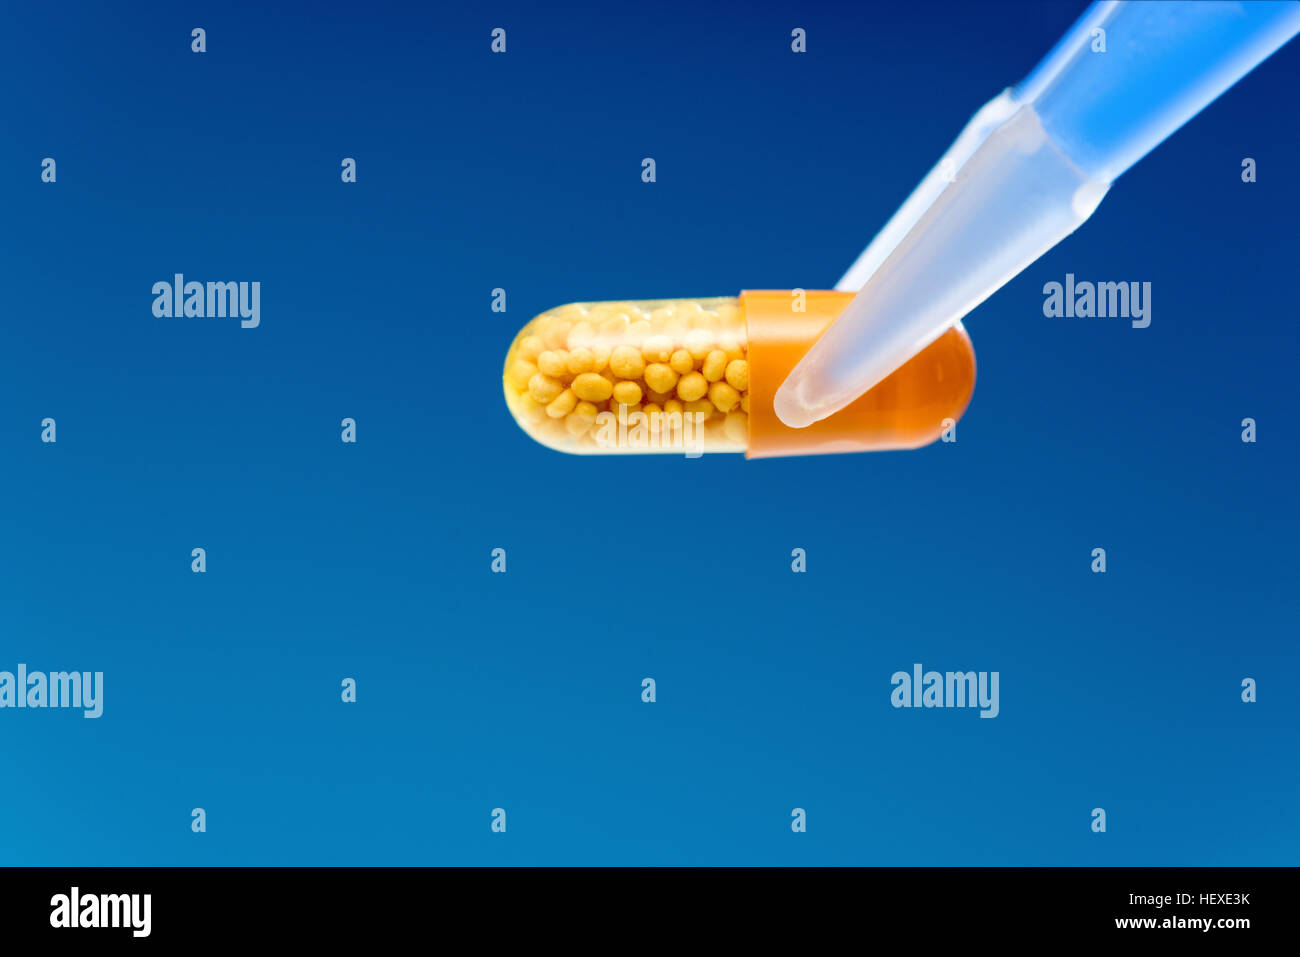 Capsule against a blue background. - Stock Image